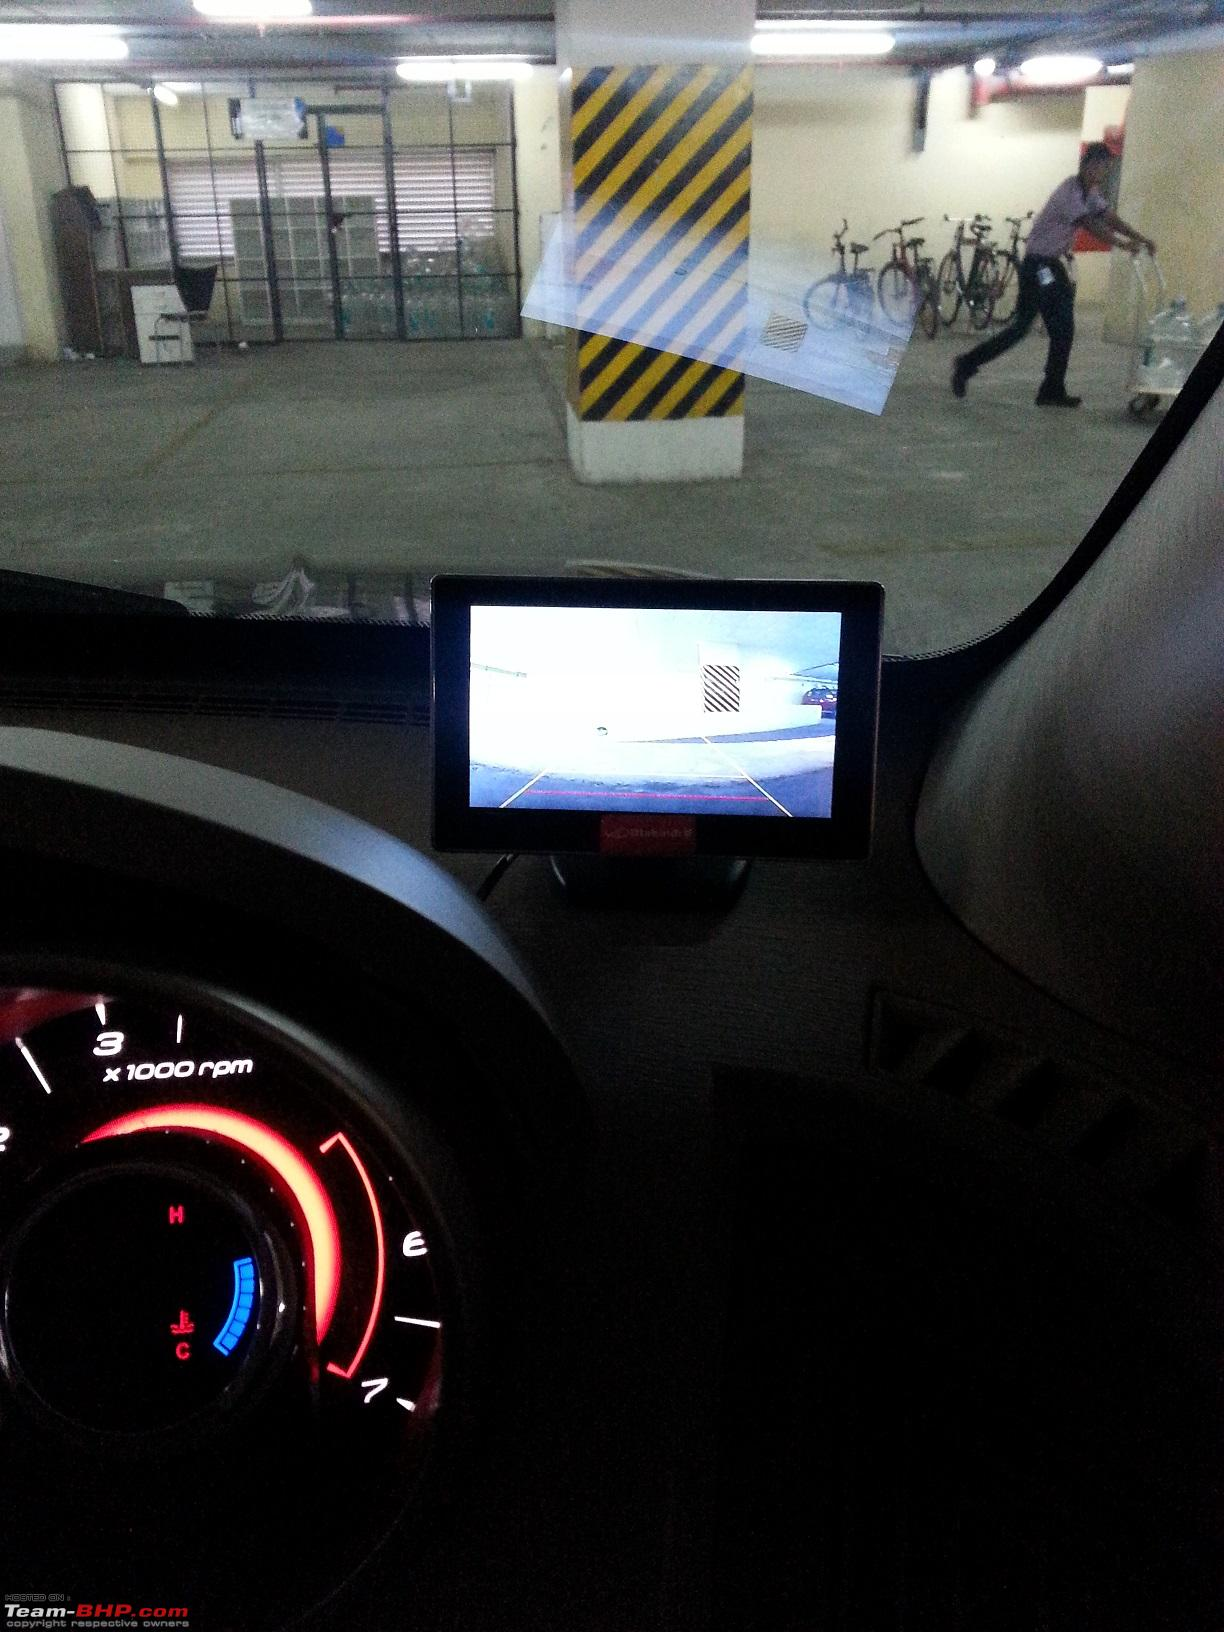 Reverse Camera Or Sensor Page 38 Team Bhp Parking Circuit For Car Security System 20140207 083317